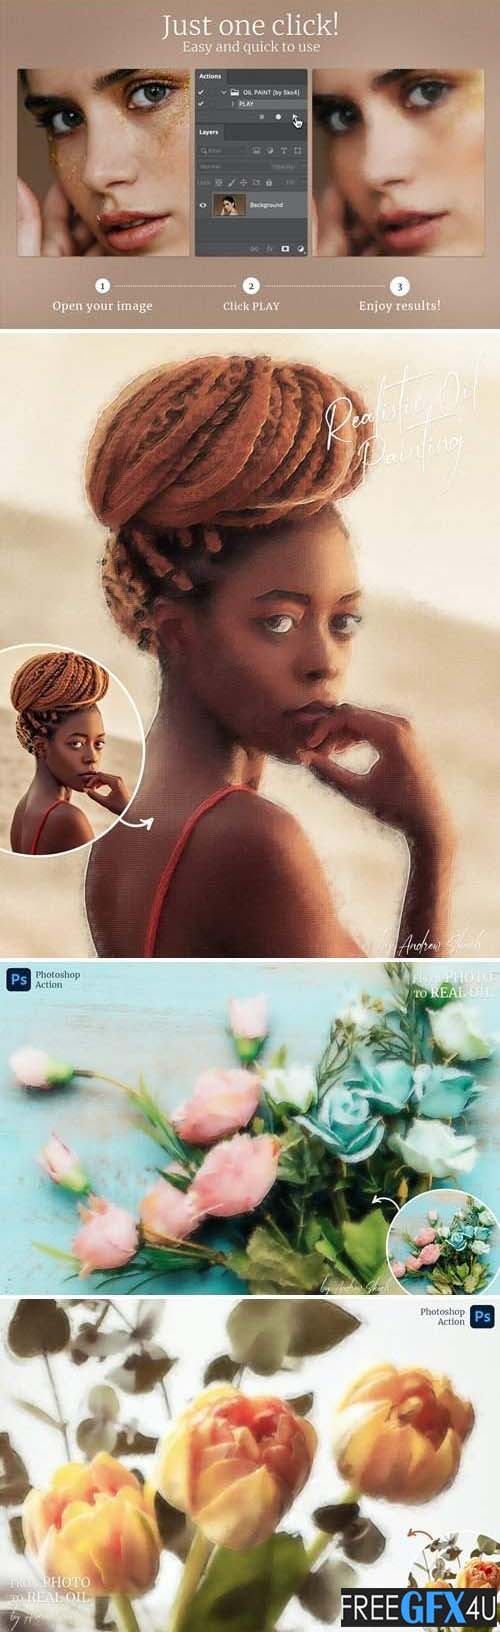 Realistic Oil Painting - Photoshop Action